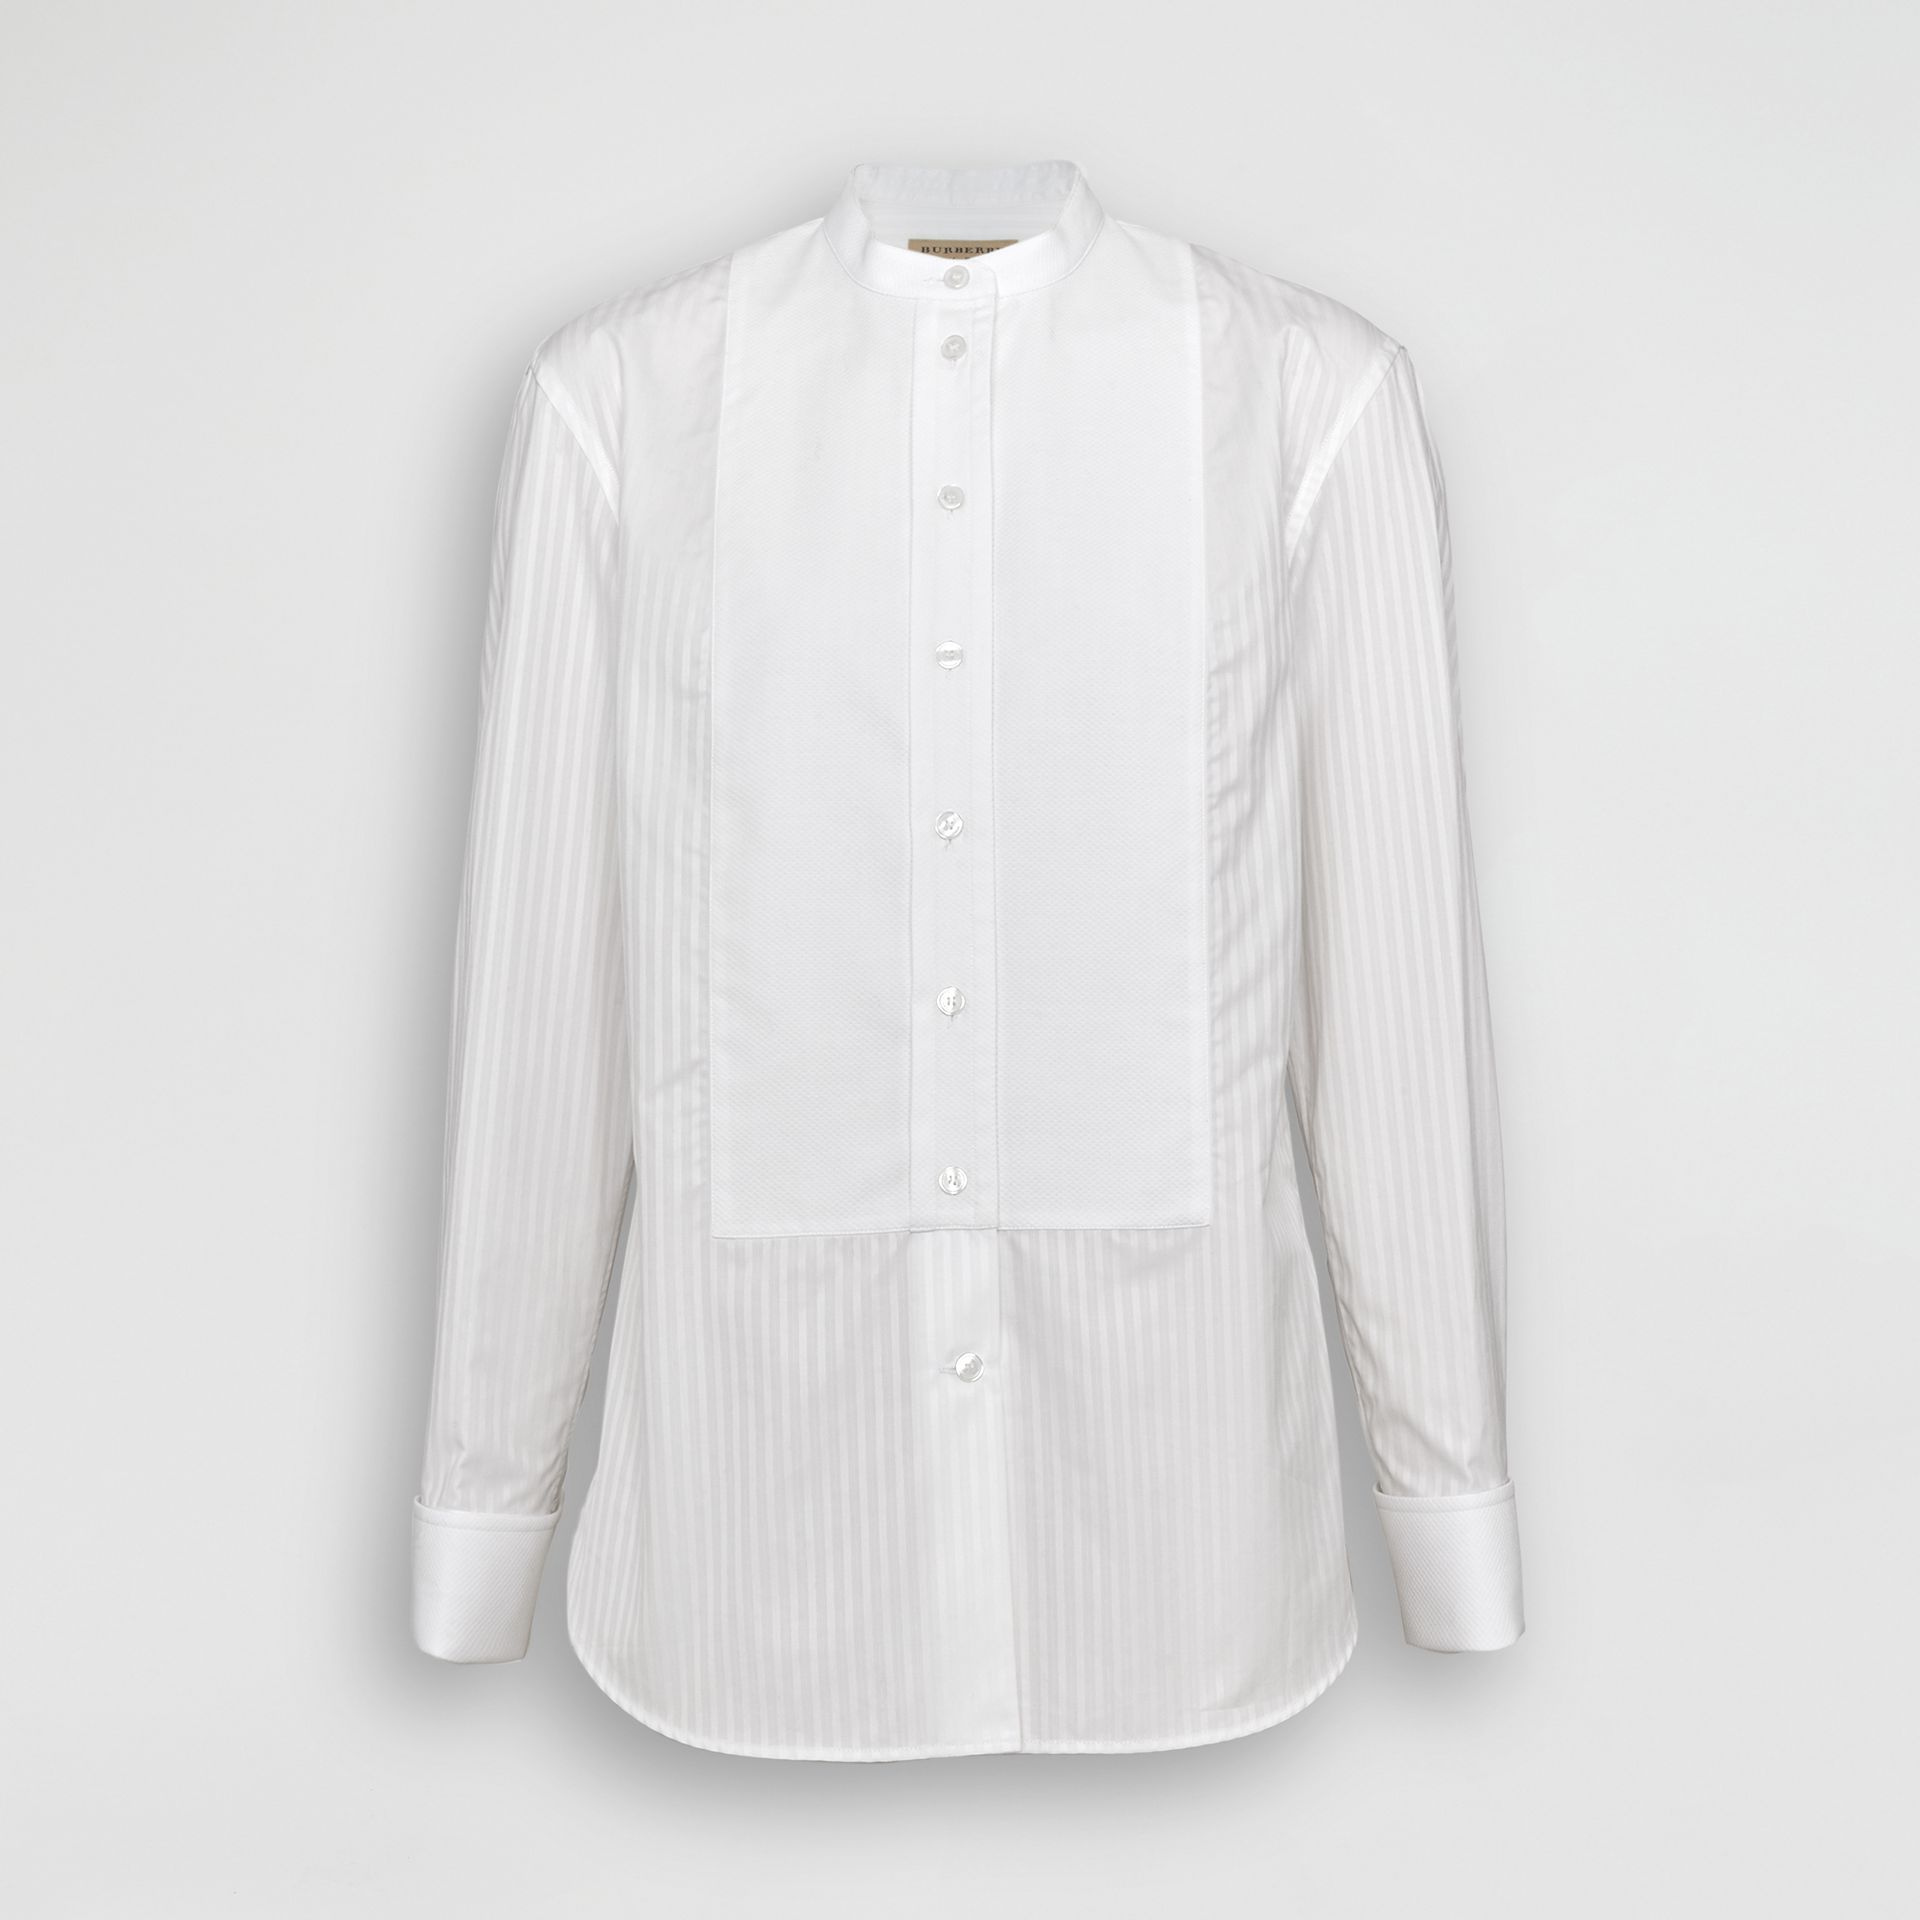 Slim Fit Panelled Bib Cotton Shirt in White - Women | Burberry Australia - gallery image 3